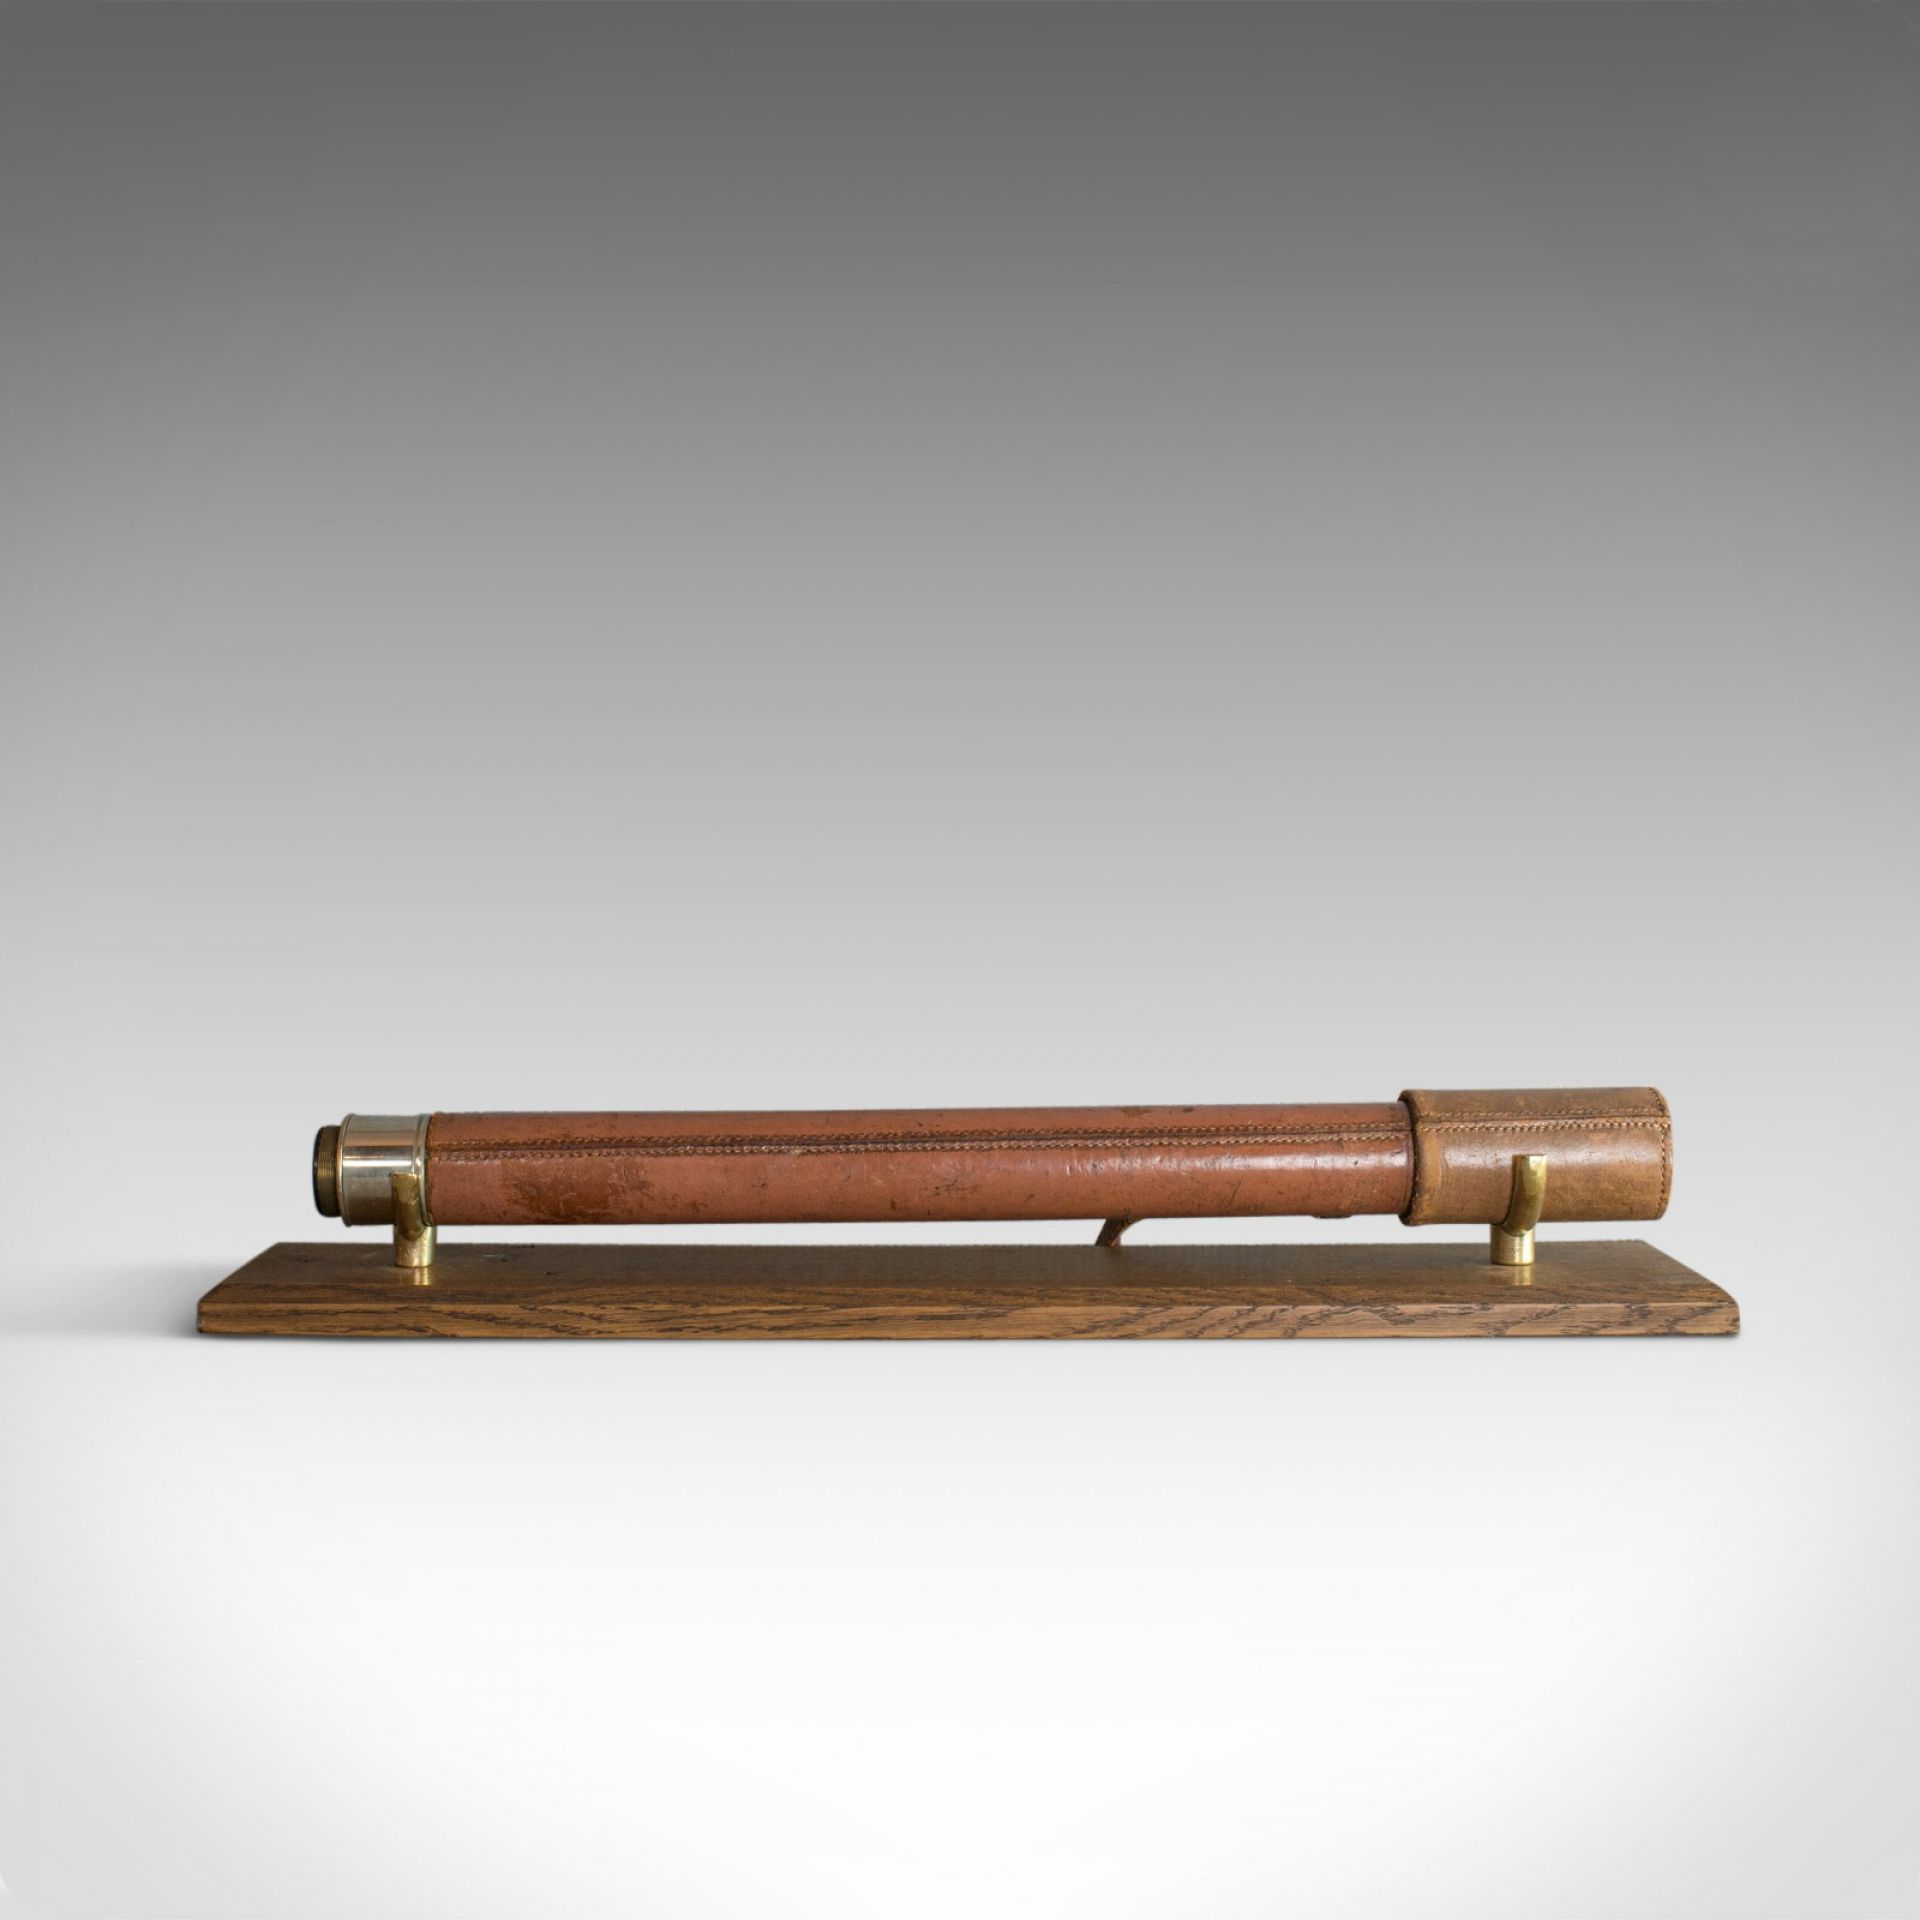 Antique Telescope, H Hughes and Son, London, Officer of the Watch, Early C20th